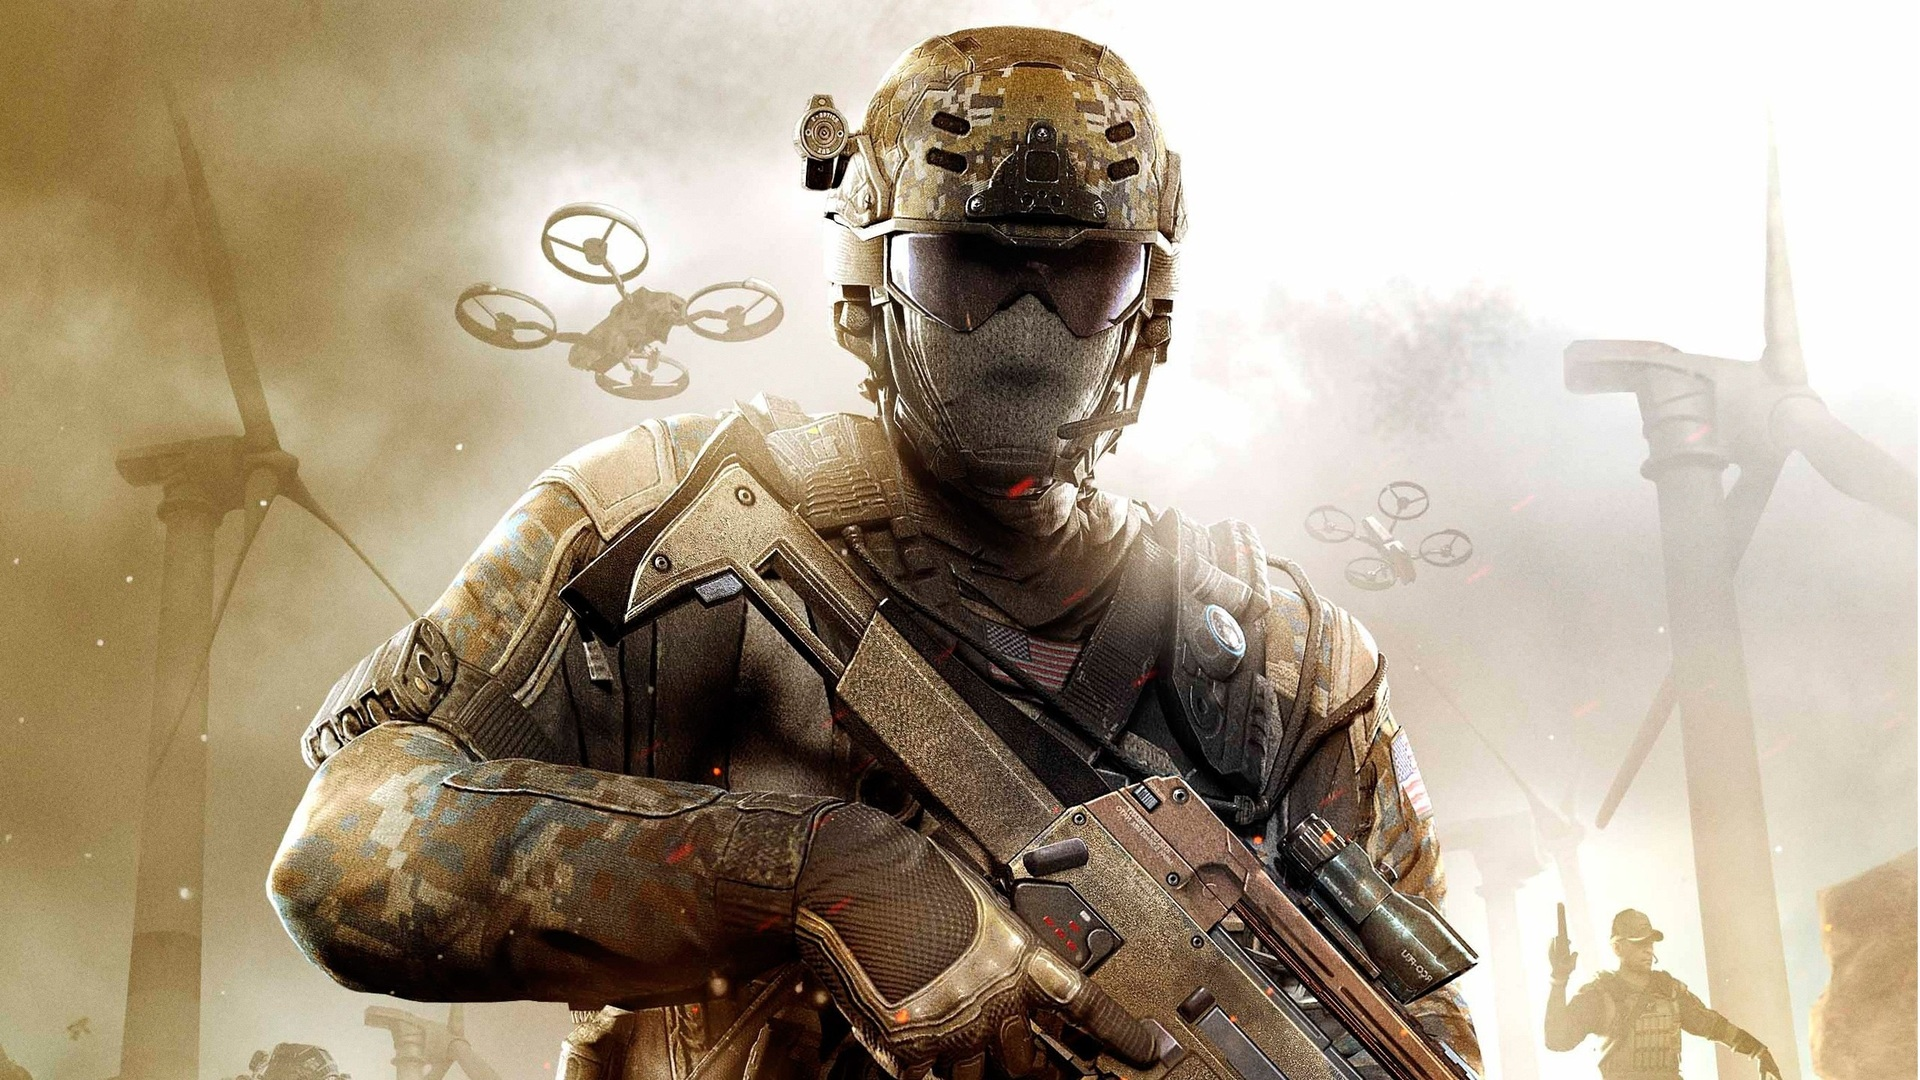 call-of-duty-black-ops-cool-games-wallpaper-pic-mch050702 - dzbc